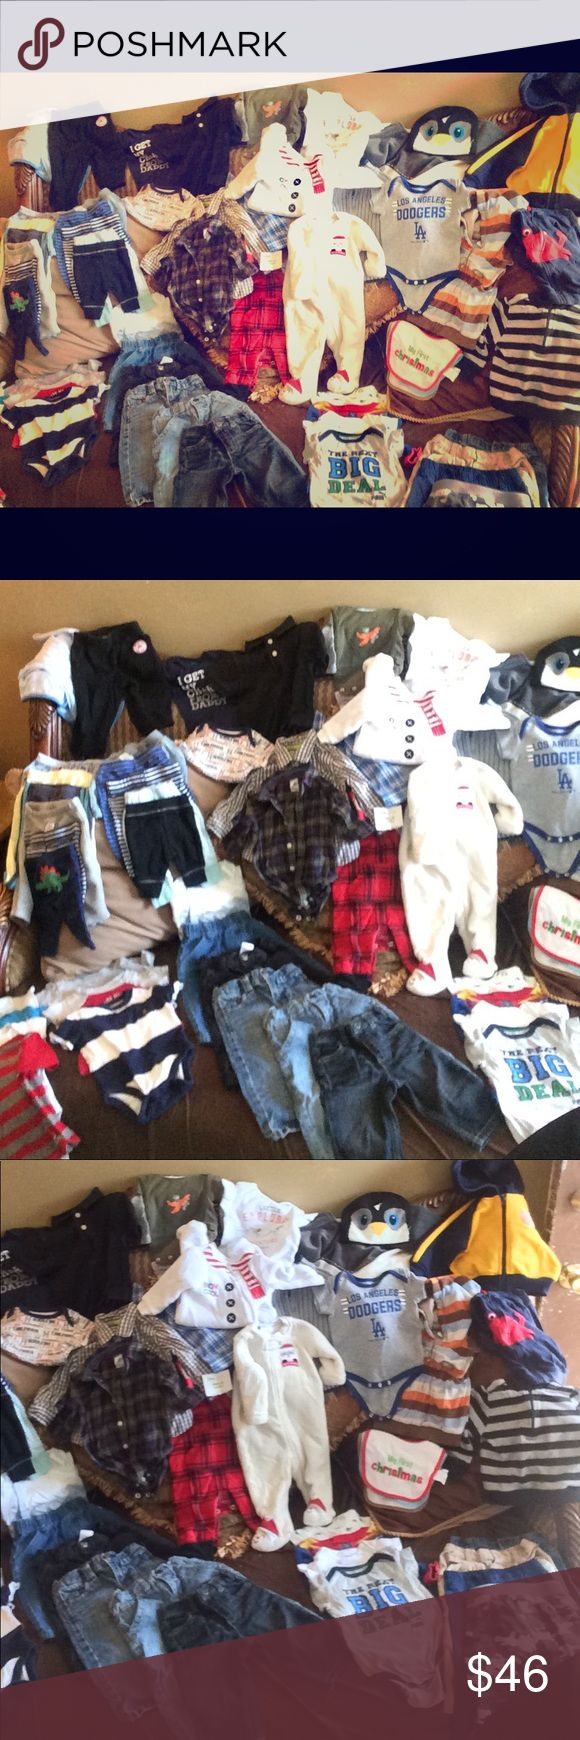 Baby Boy Clothes Bundle About 50-60 pieces   Baby gap  Guess baby  Oshkosh  Tommy Hilfiger  Carters  Little wonders  Mixed brands  Sizes 0-3M through 9-12M   Selling for cheap GAP Other